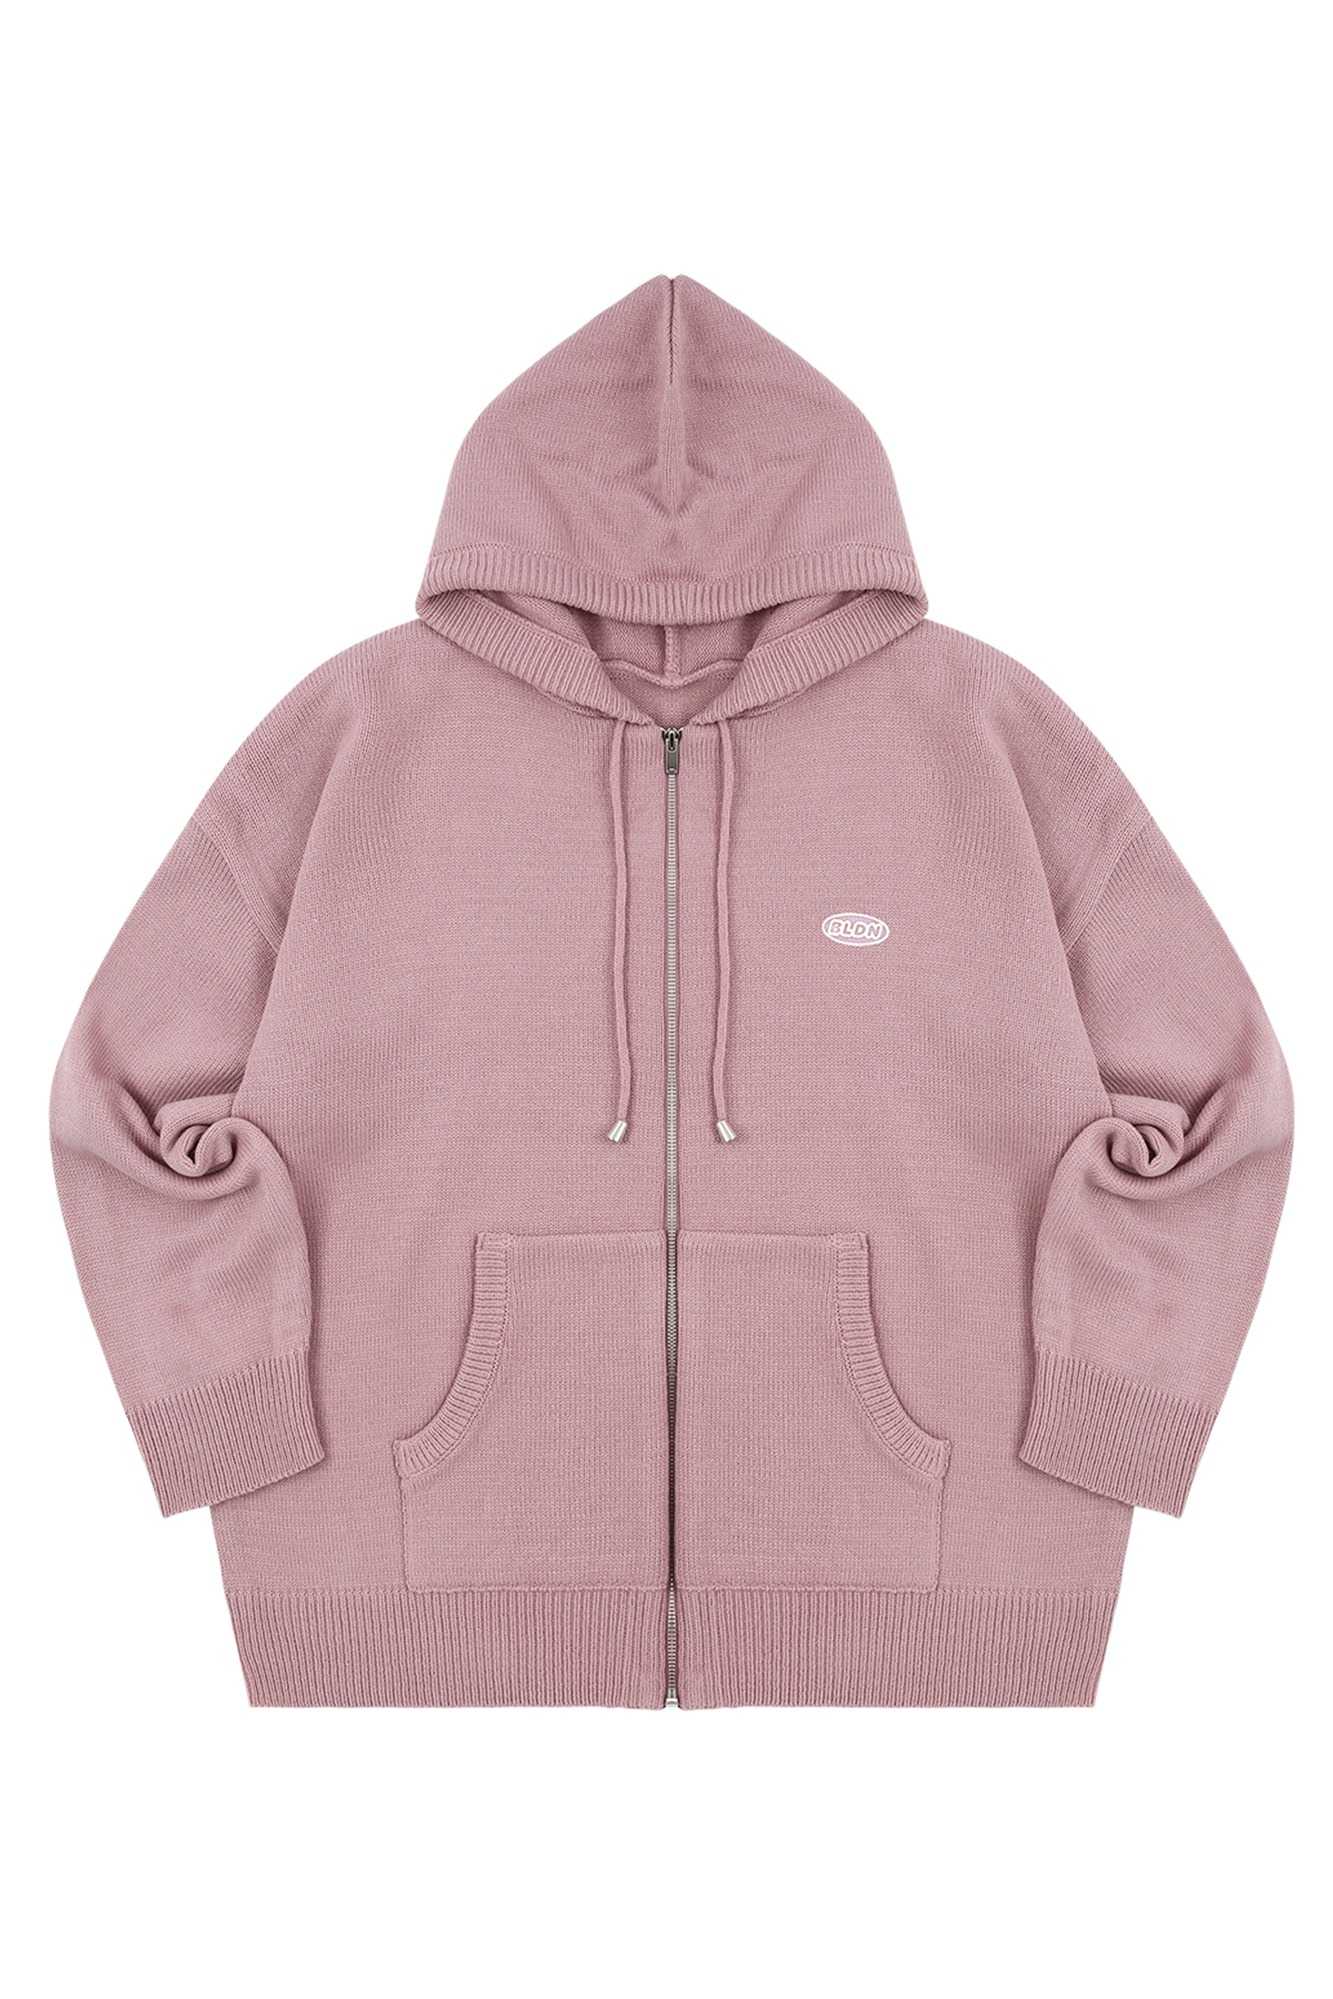 KNIT HOOD ZIP-UP_INDIE PINK